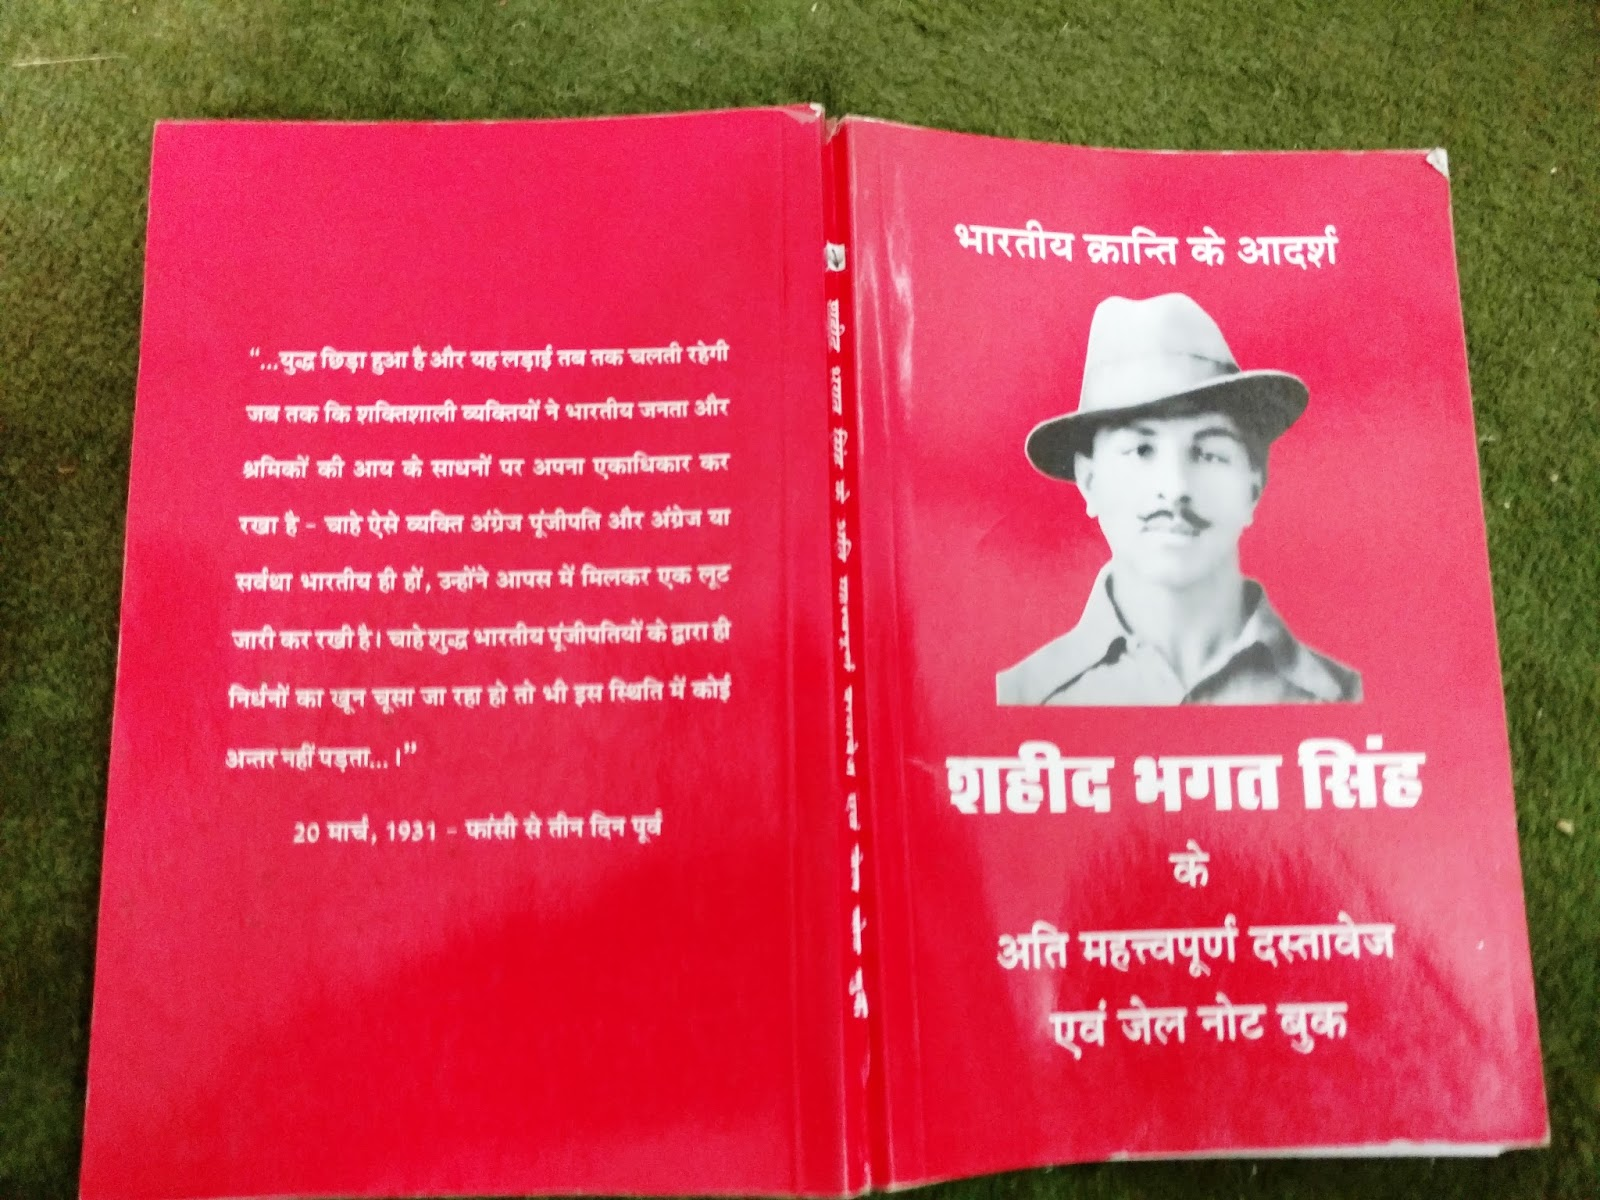 bhagat singh essay bhagat singh defamed in du text book essays  bhagat singh study chaman lal grandson of sh kulbir singh younger brother of shaheed bhagat singh